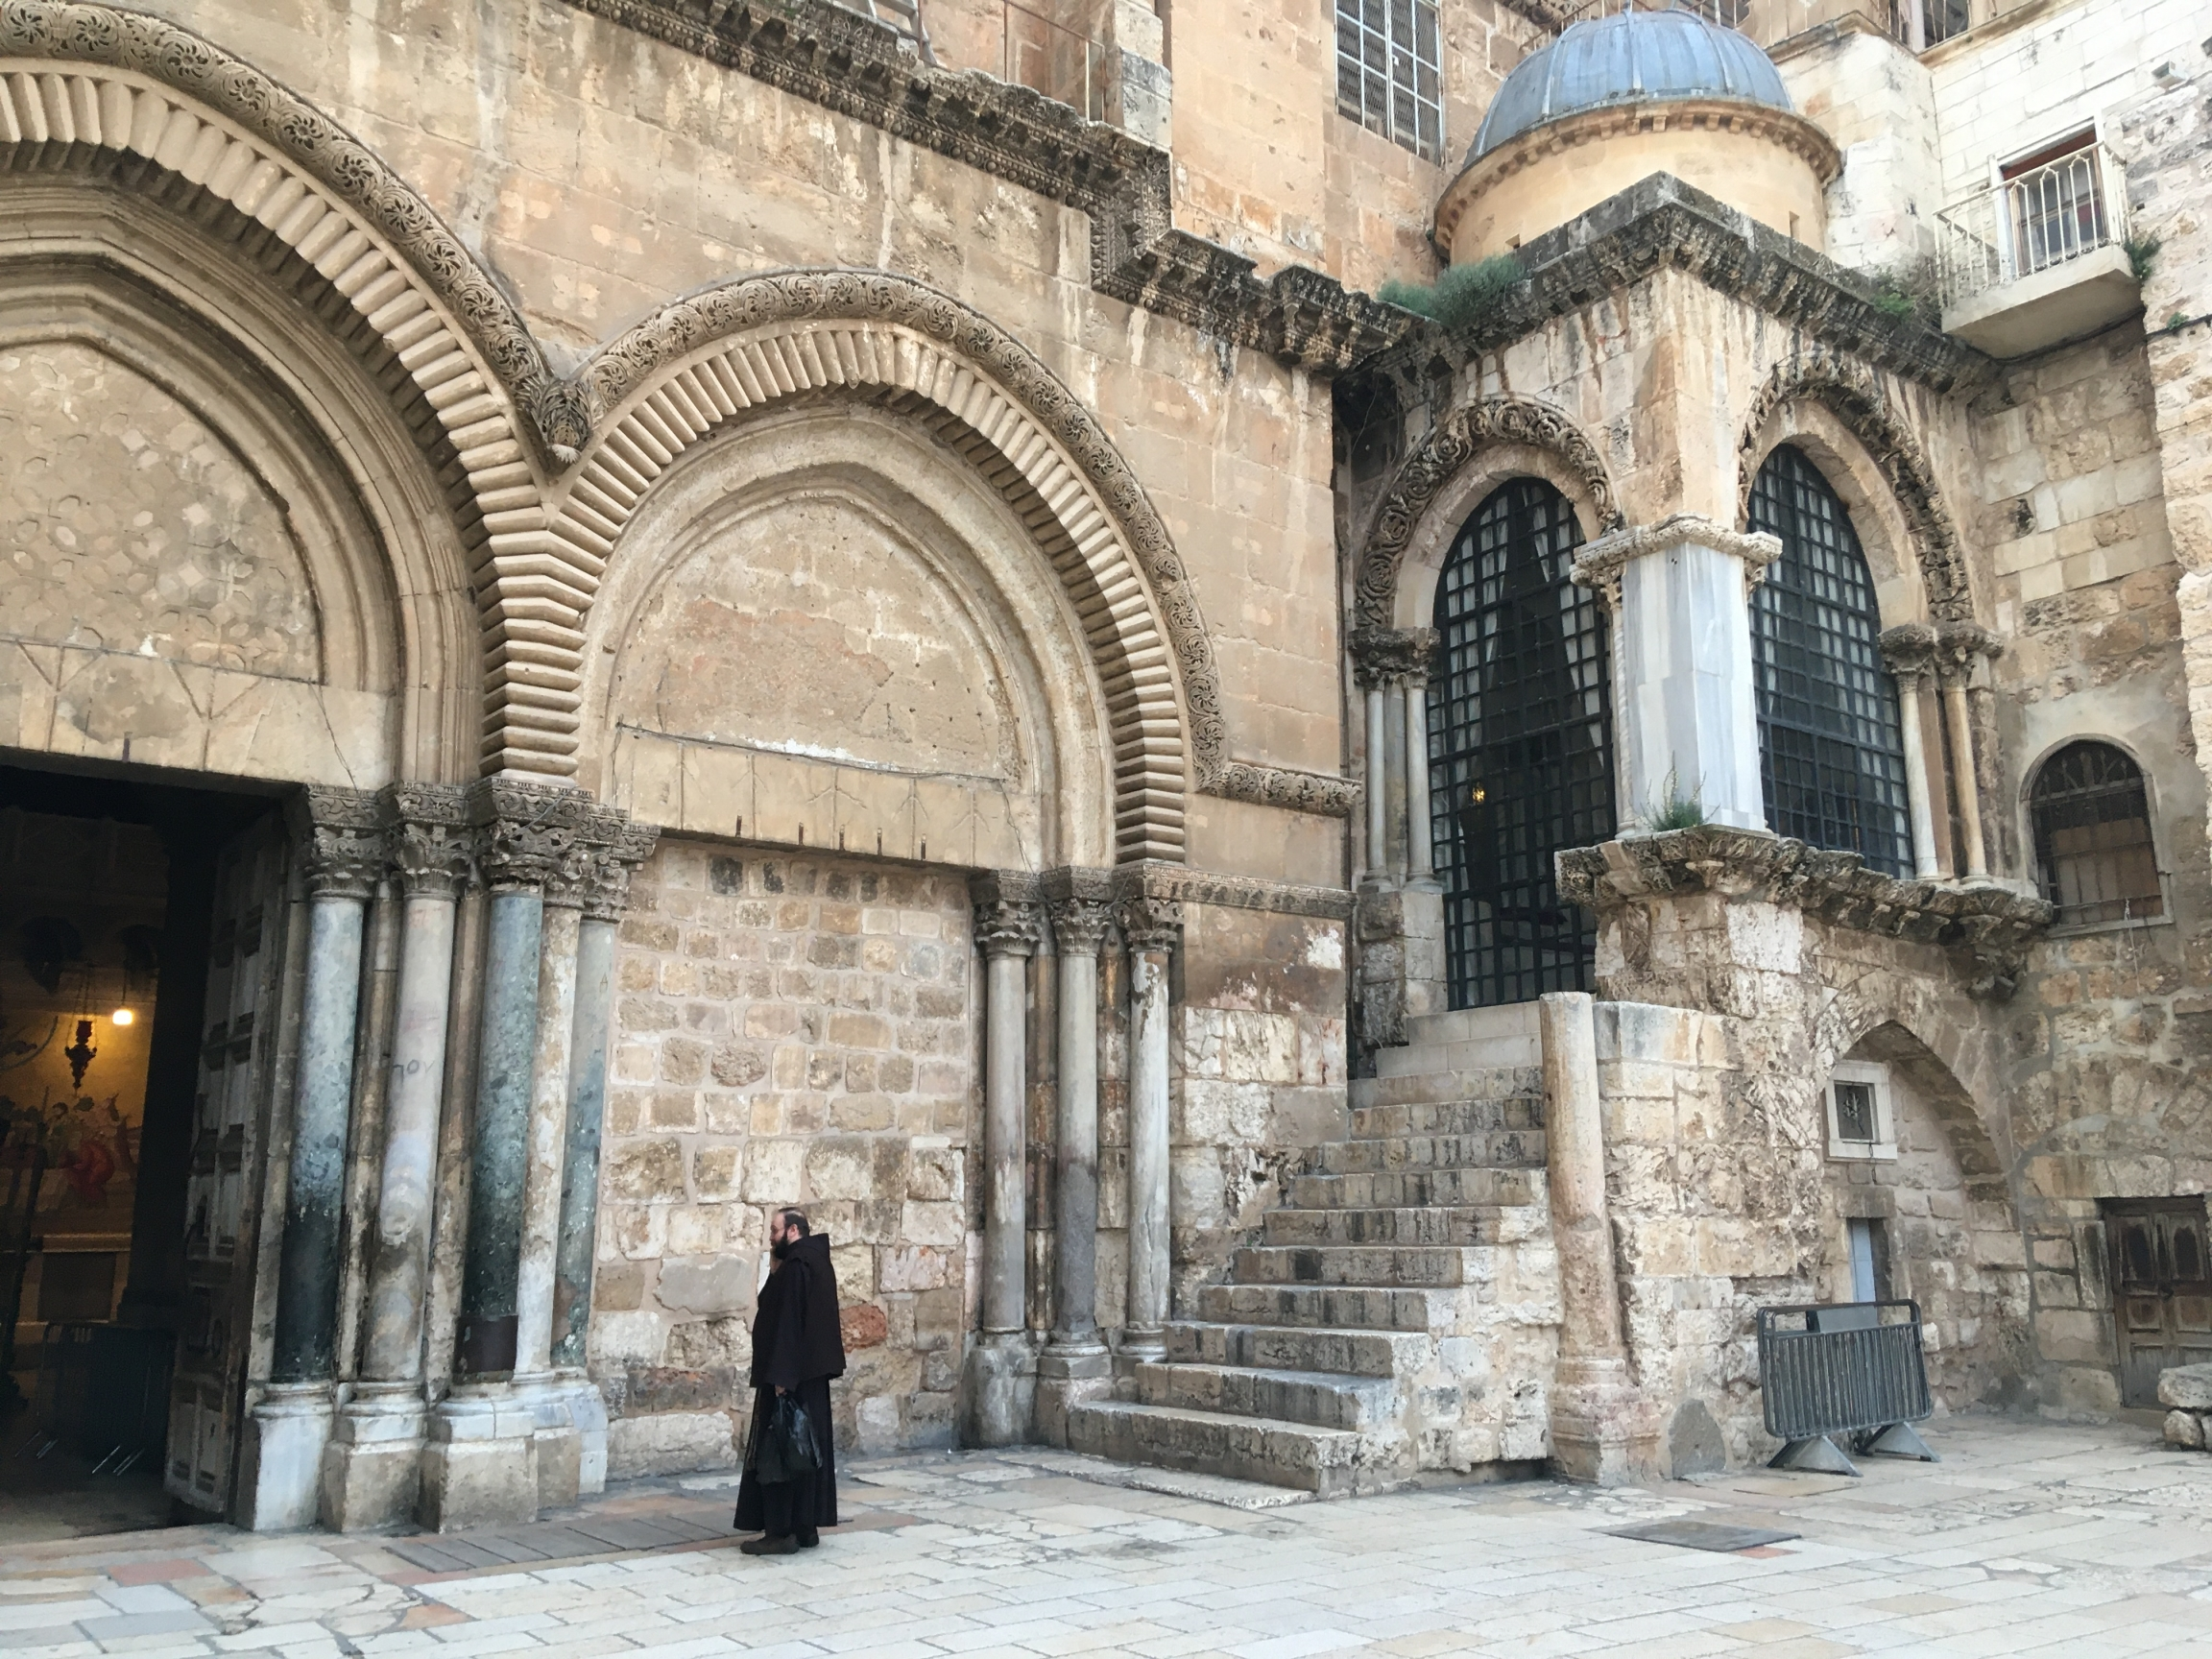 The Church of the Holy Sepulchre was mostly empty on a recent Sunday.